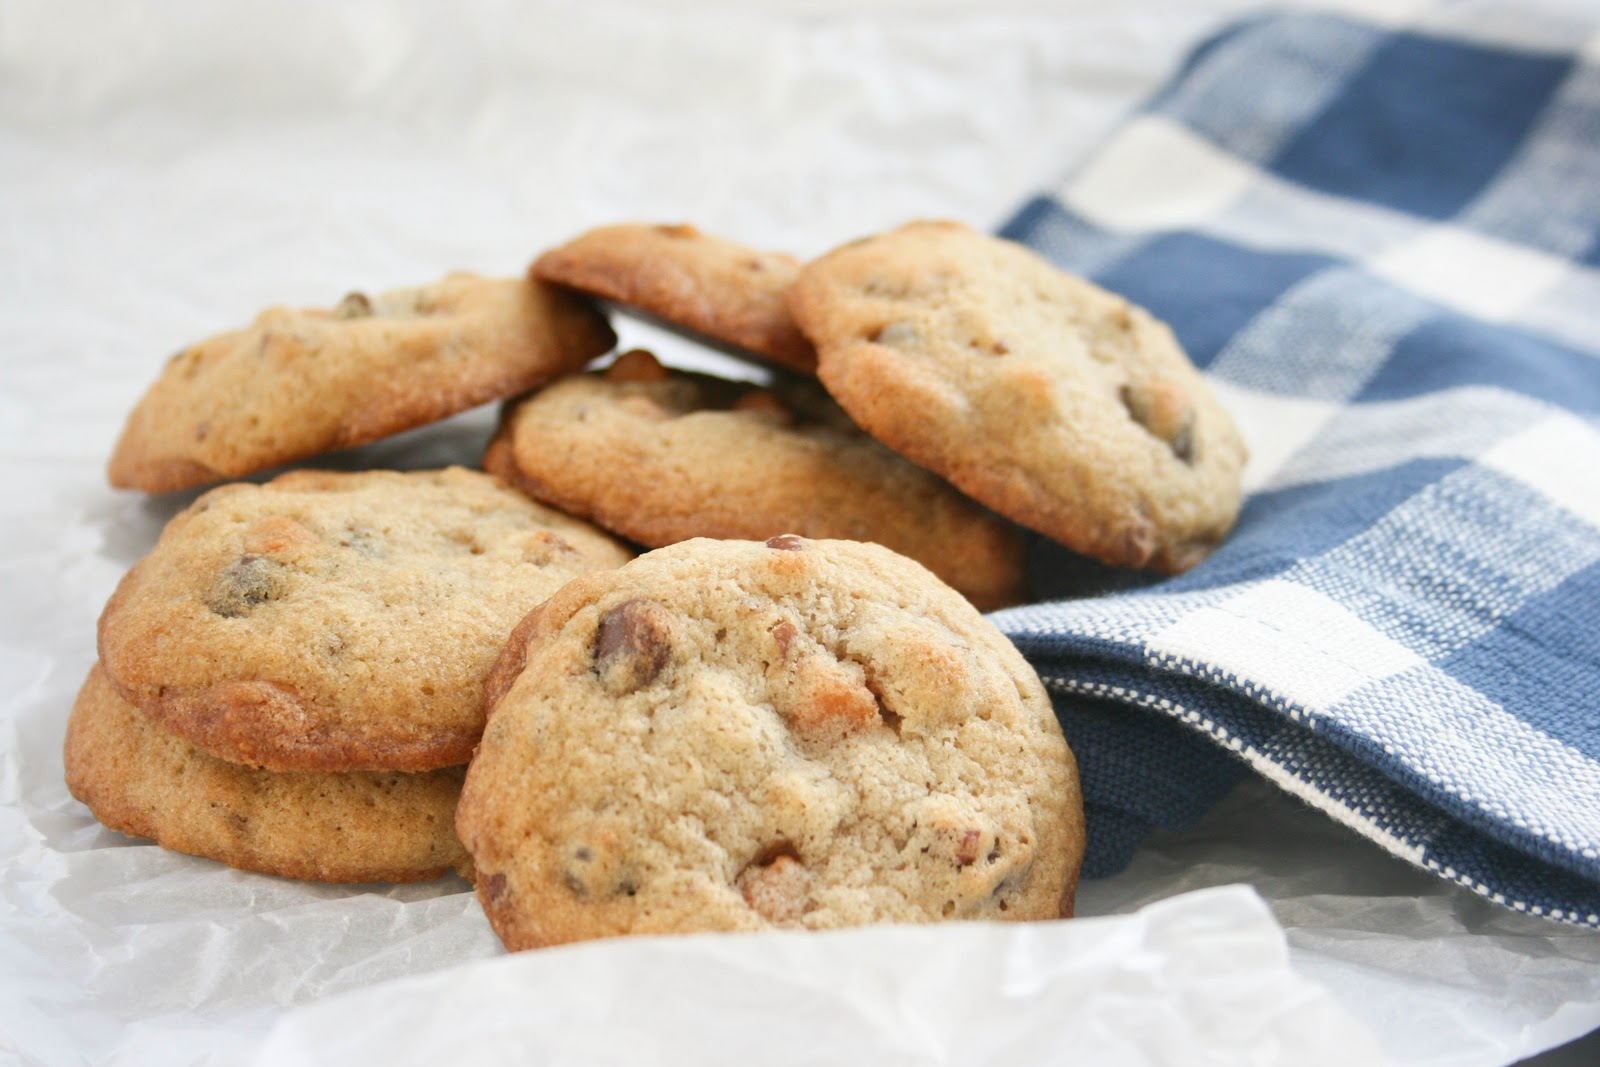 These cookies are filled with chocolate chips, butterscotch chips, and ...